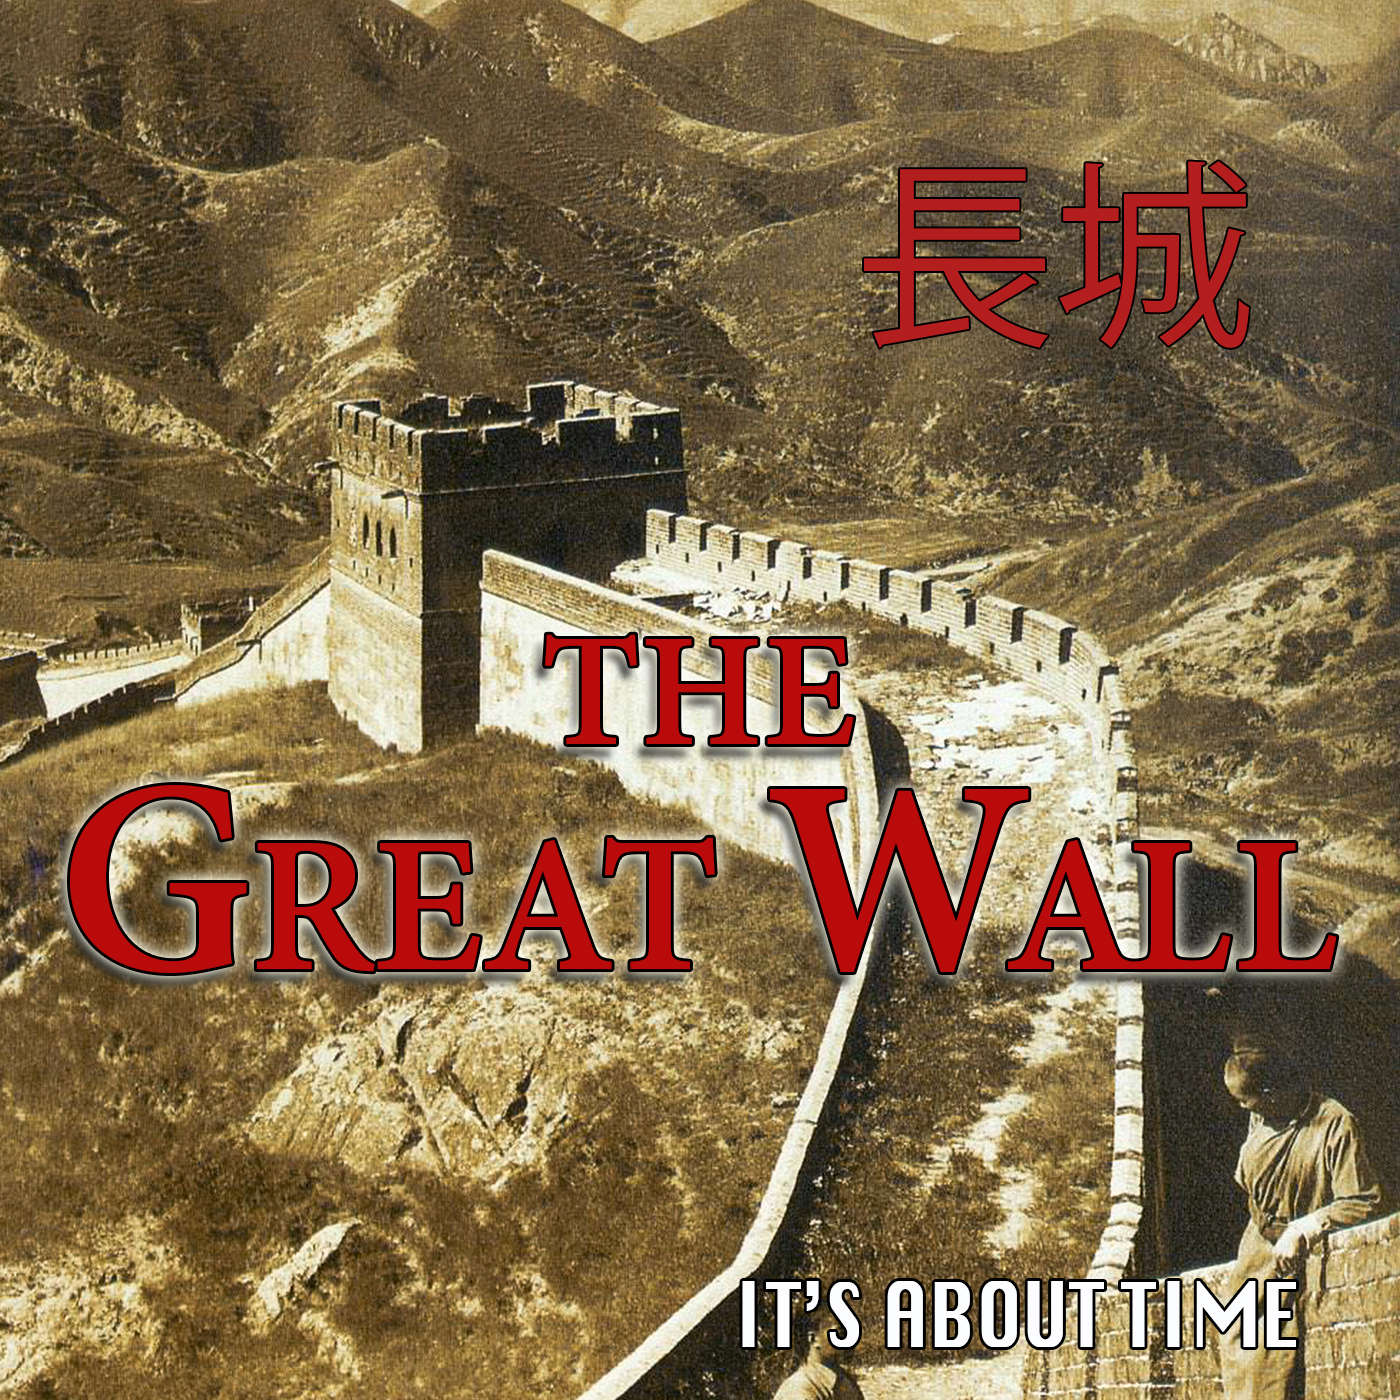 S02E11 - The Great Wall - Travel through time to meet Genghis Kahn and take a tour of the Great Wall